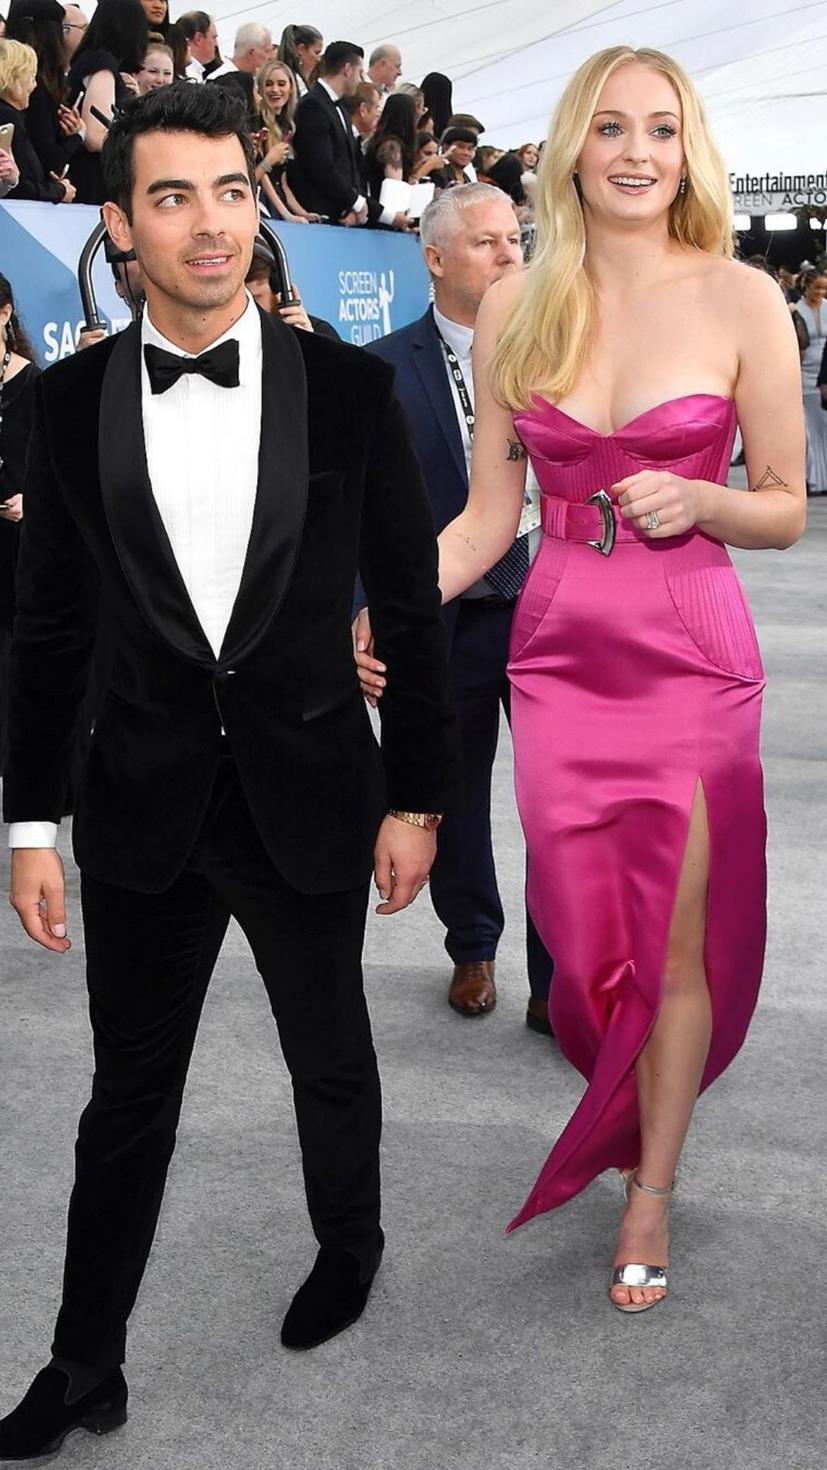 Sophie Turner wears a bright pink Louis Vuitton dress, while Joe Jonas opts for a Boss suit